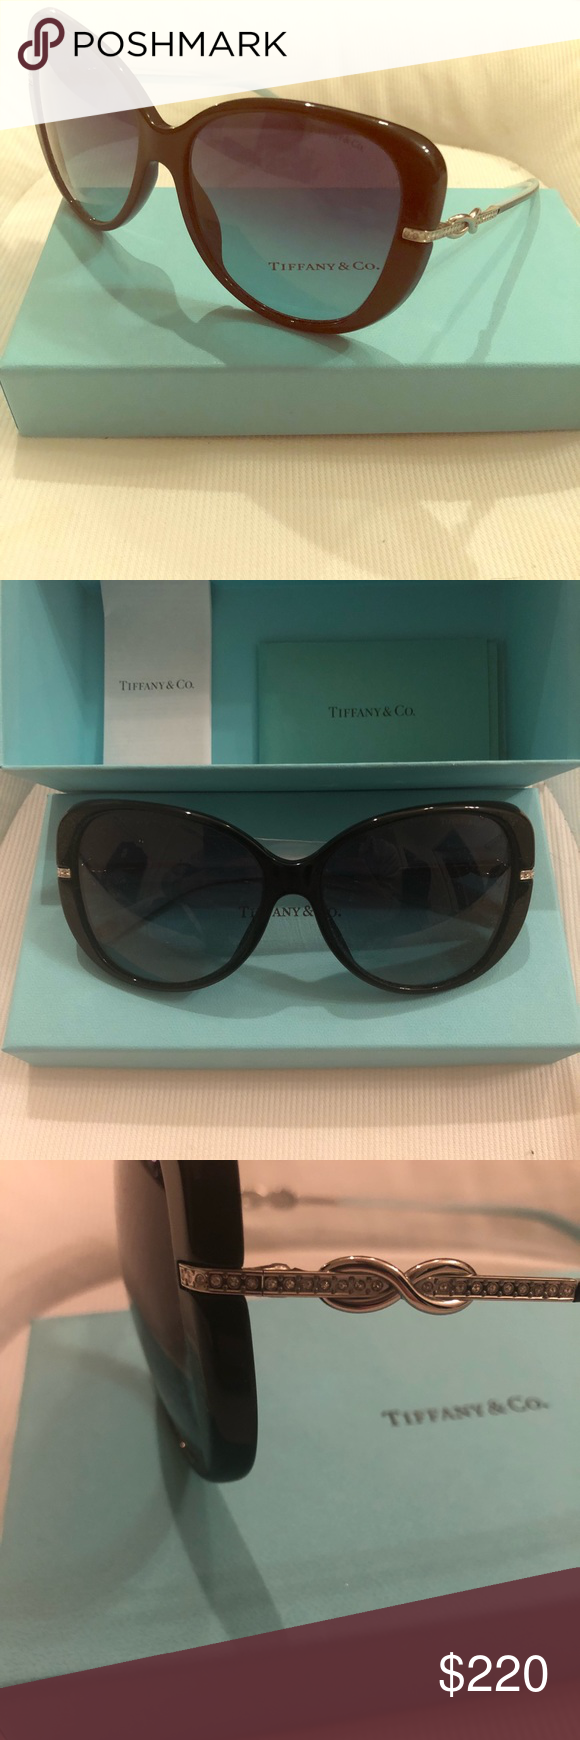 0115395284a Tiffany polarized butterfly glasses TF-4126B Butterfly polarized glasses  with rhinestone infinity on each stem. They are still brand new in original  box ...